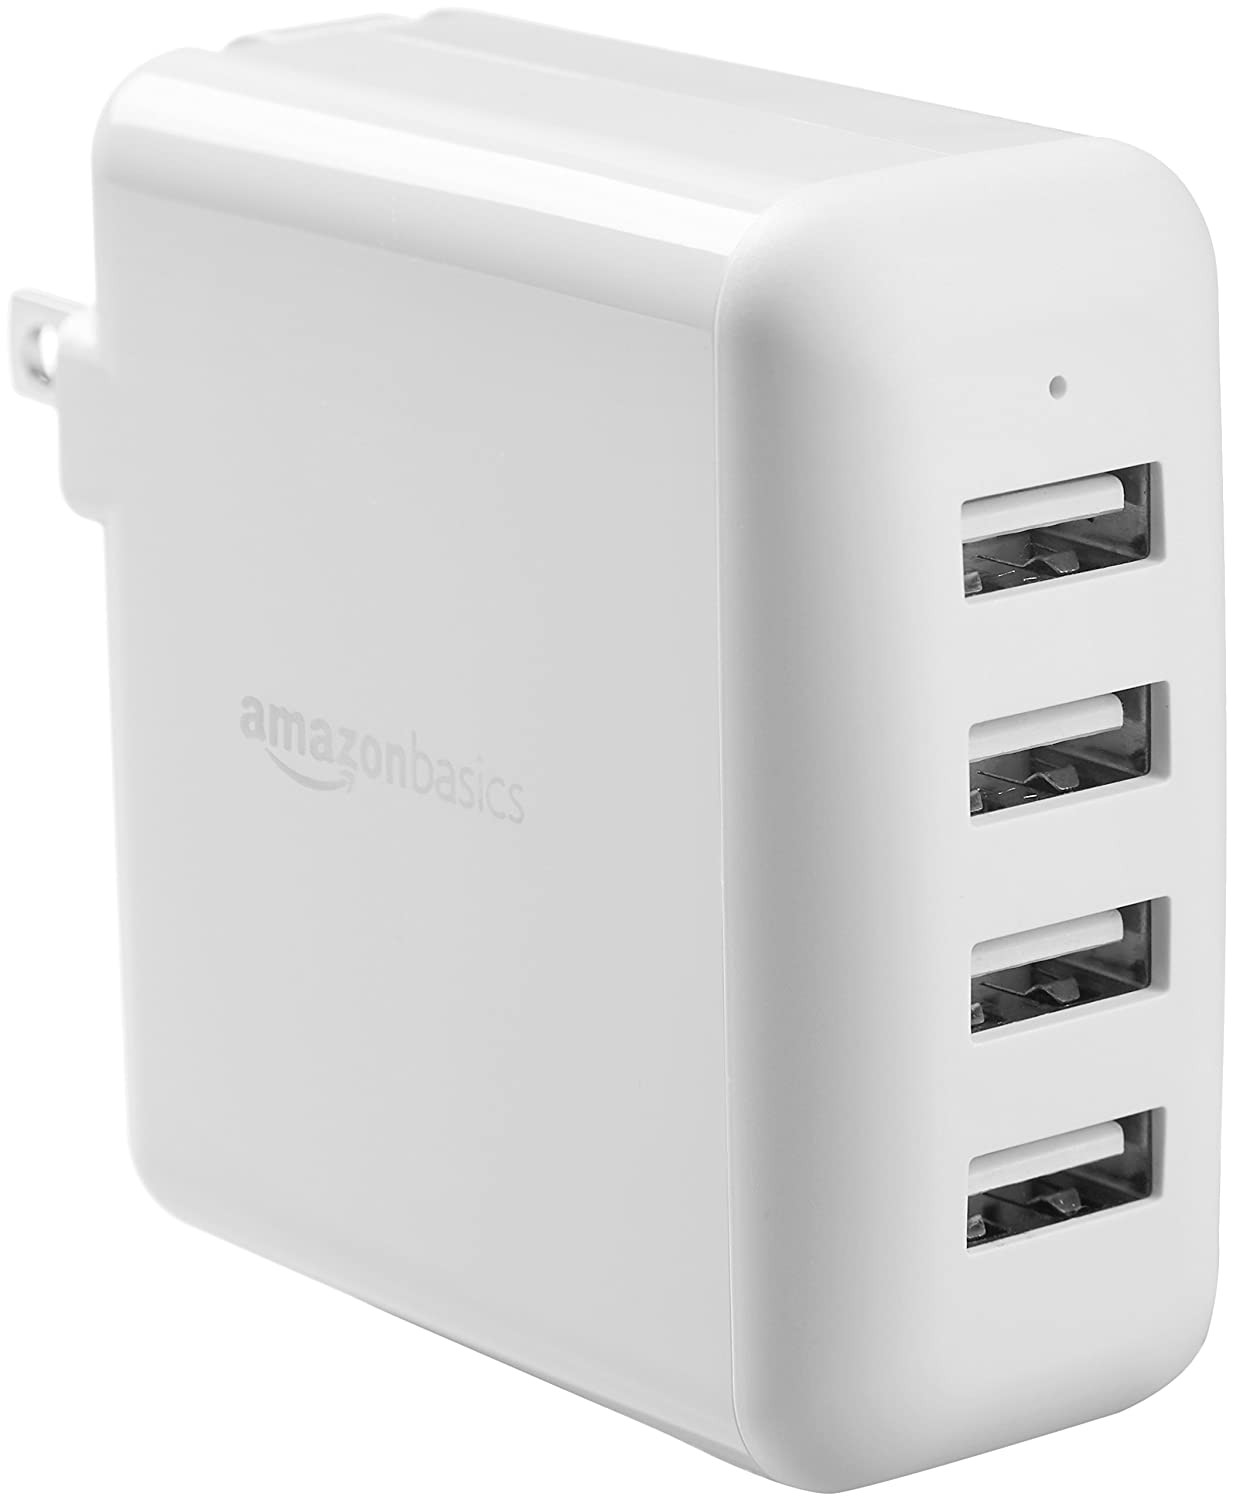 AmazonBasics 40W 4-Port Multi USB Wall Charger, White